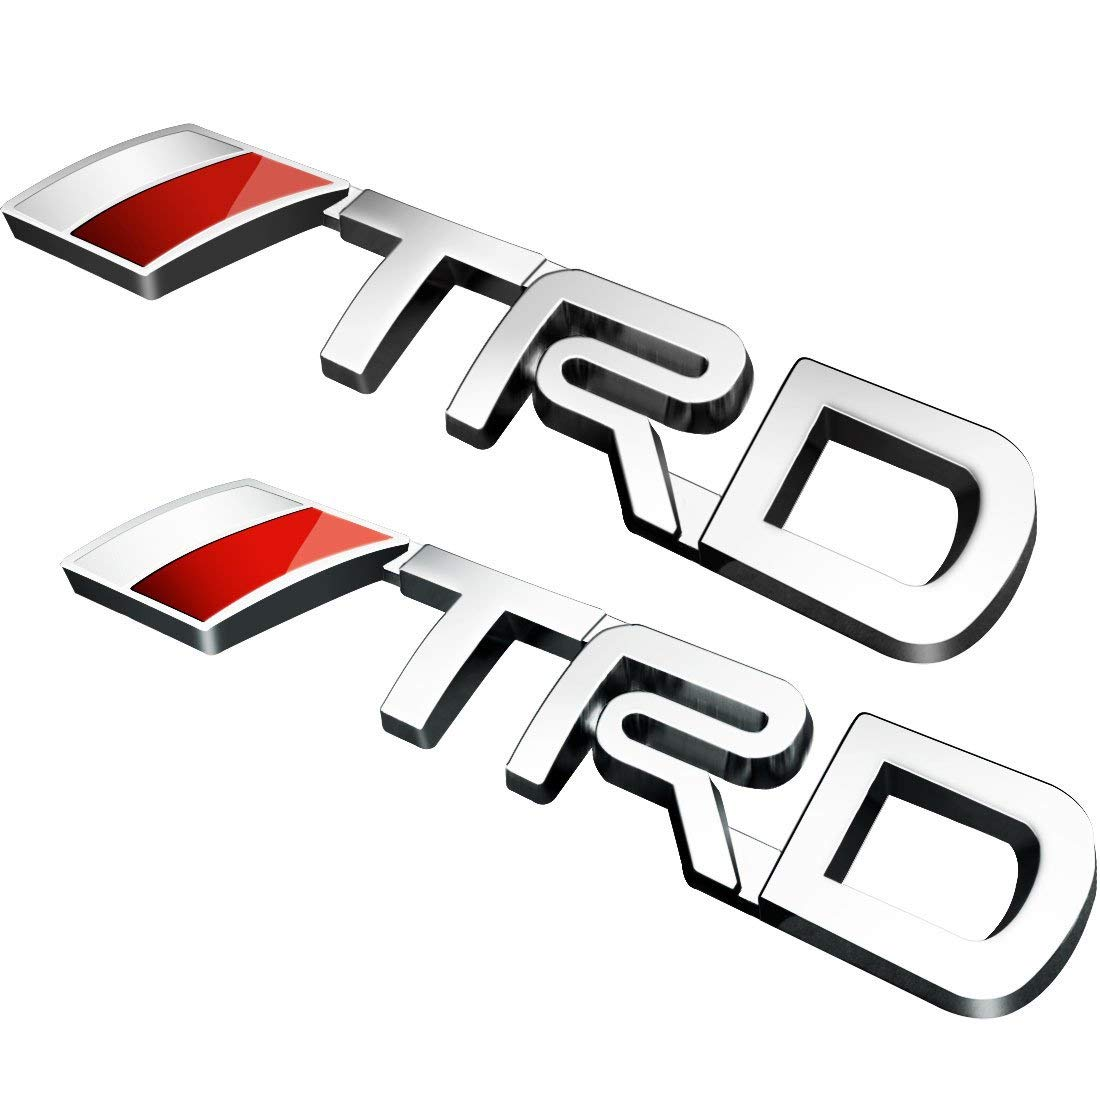 LP-BS09A 4runner,Yaris,Camry Pack of 2 Tundra Silver TRD Car Emblem Chrome Stickers Decals Badge Labeling for Fj Cruiser Supercharger Tacoma